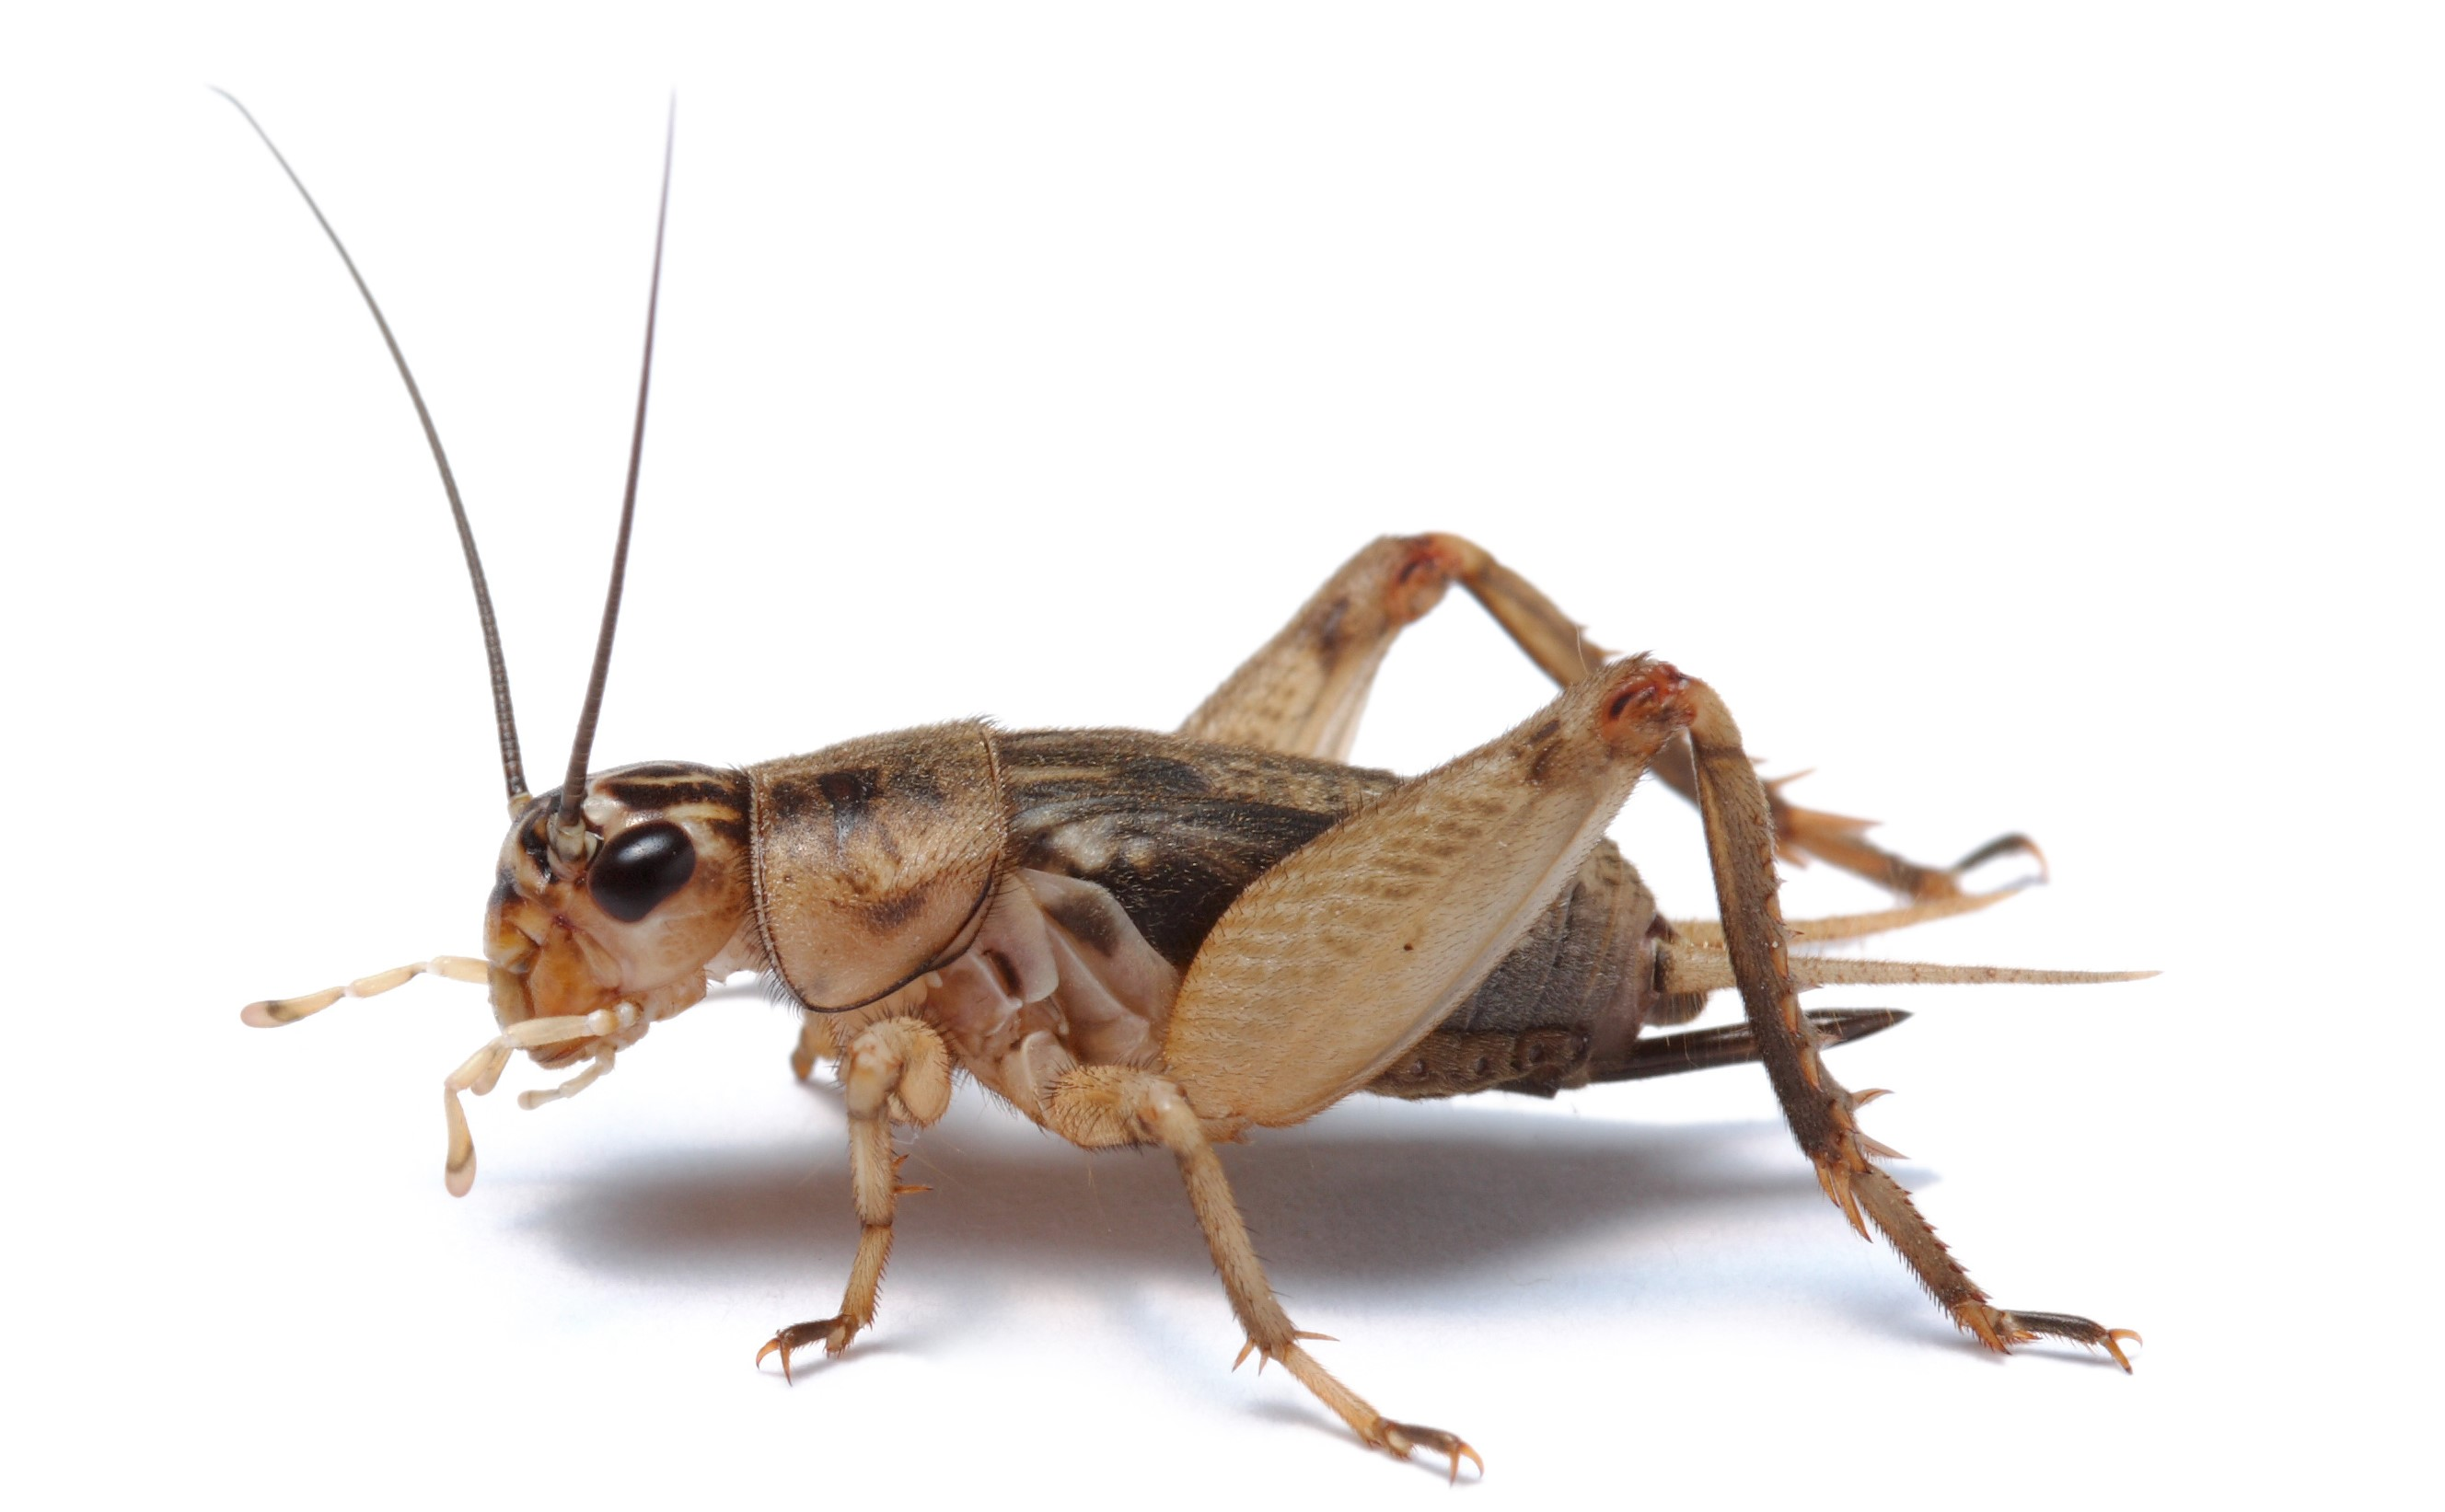 Cricket - Insectus feed for insect farming